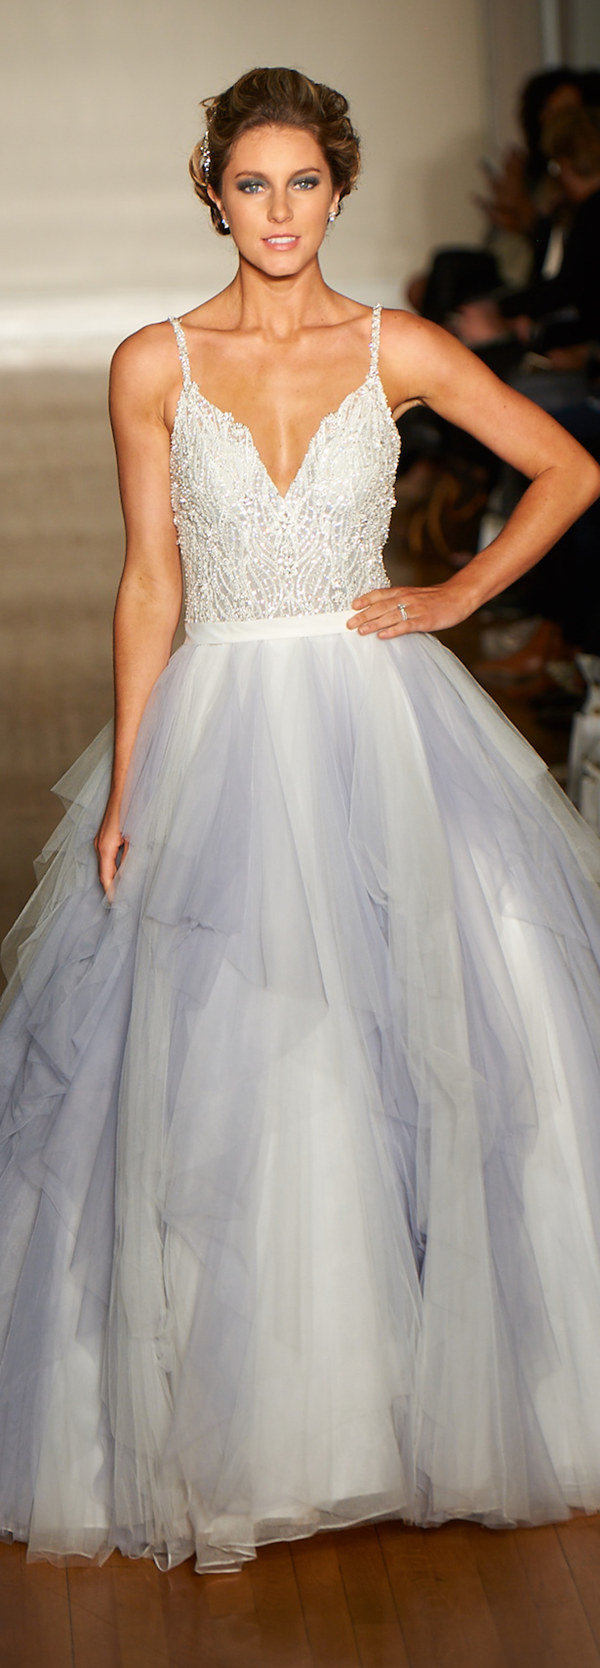 fairytale ball gown v neck wedding dresses with a touch of blue color